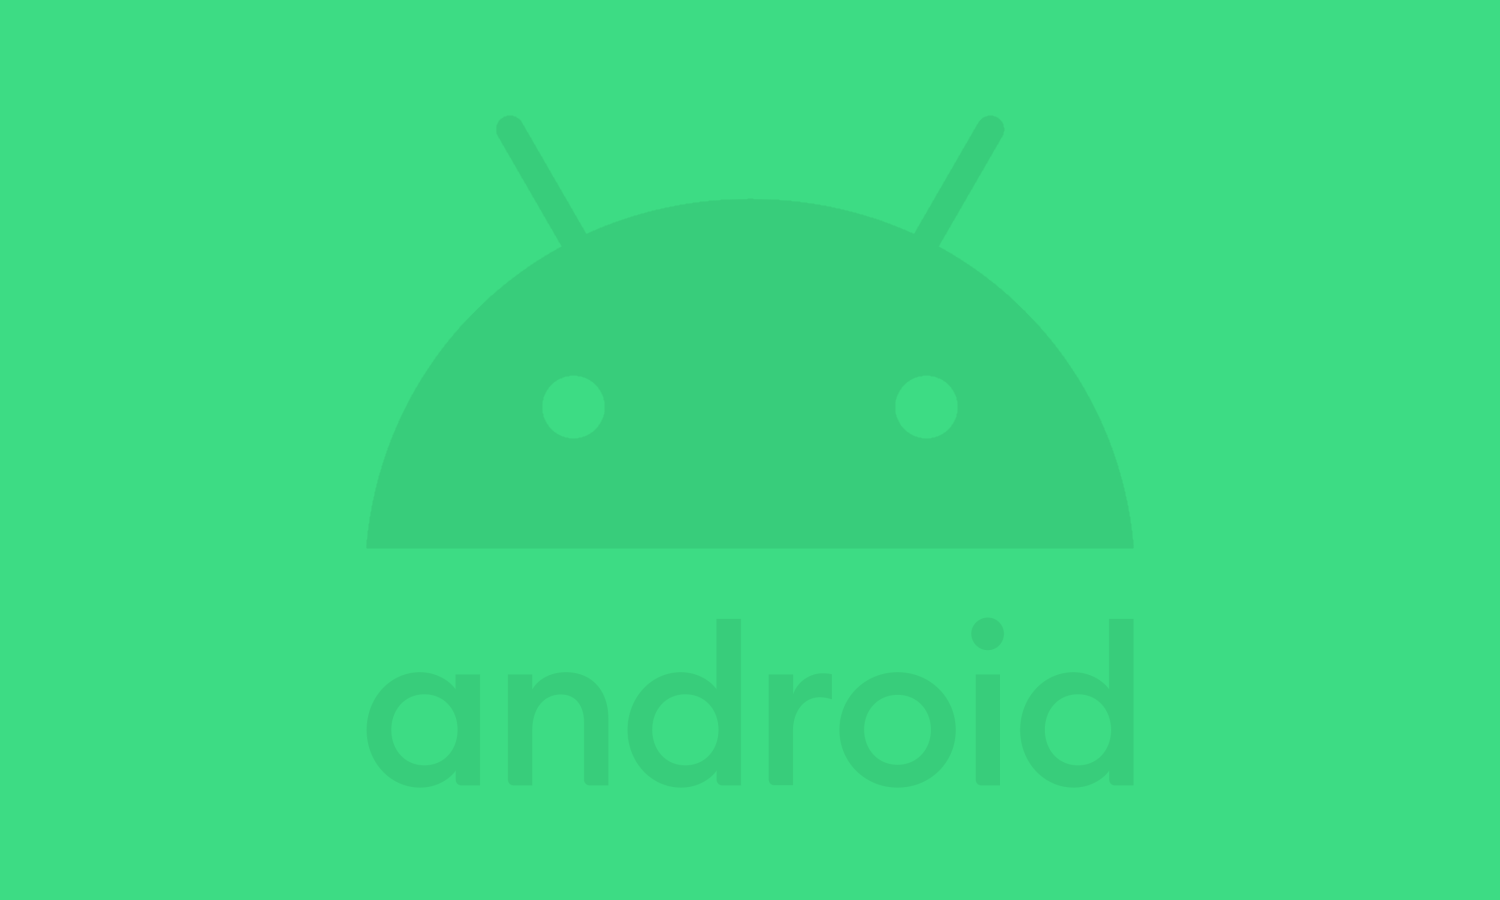 Arm and Qualcomm zero-days quietly patched in this month's Android security updates